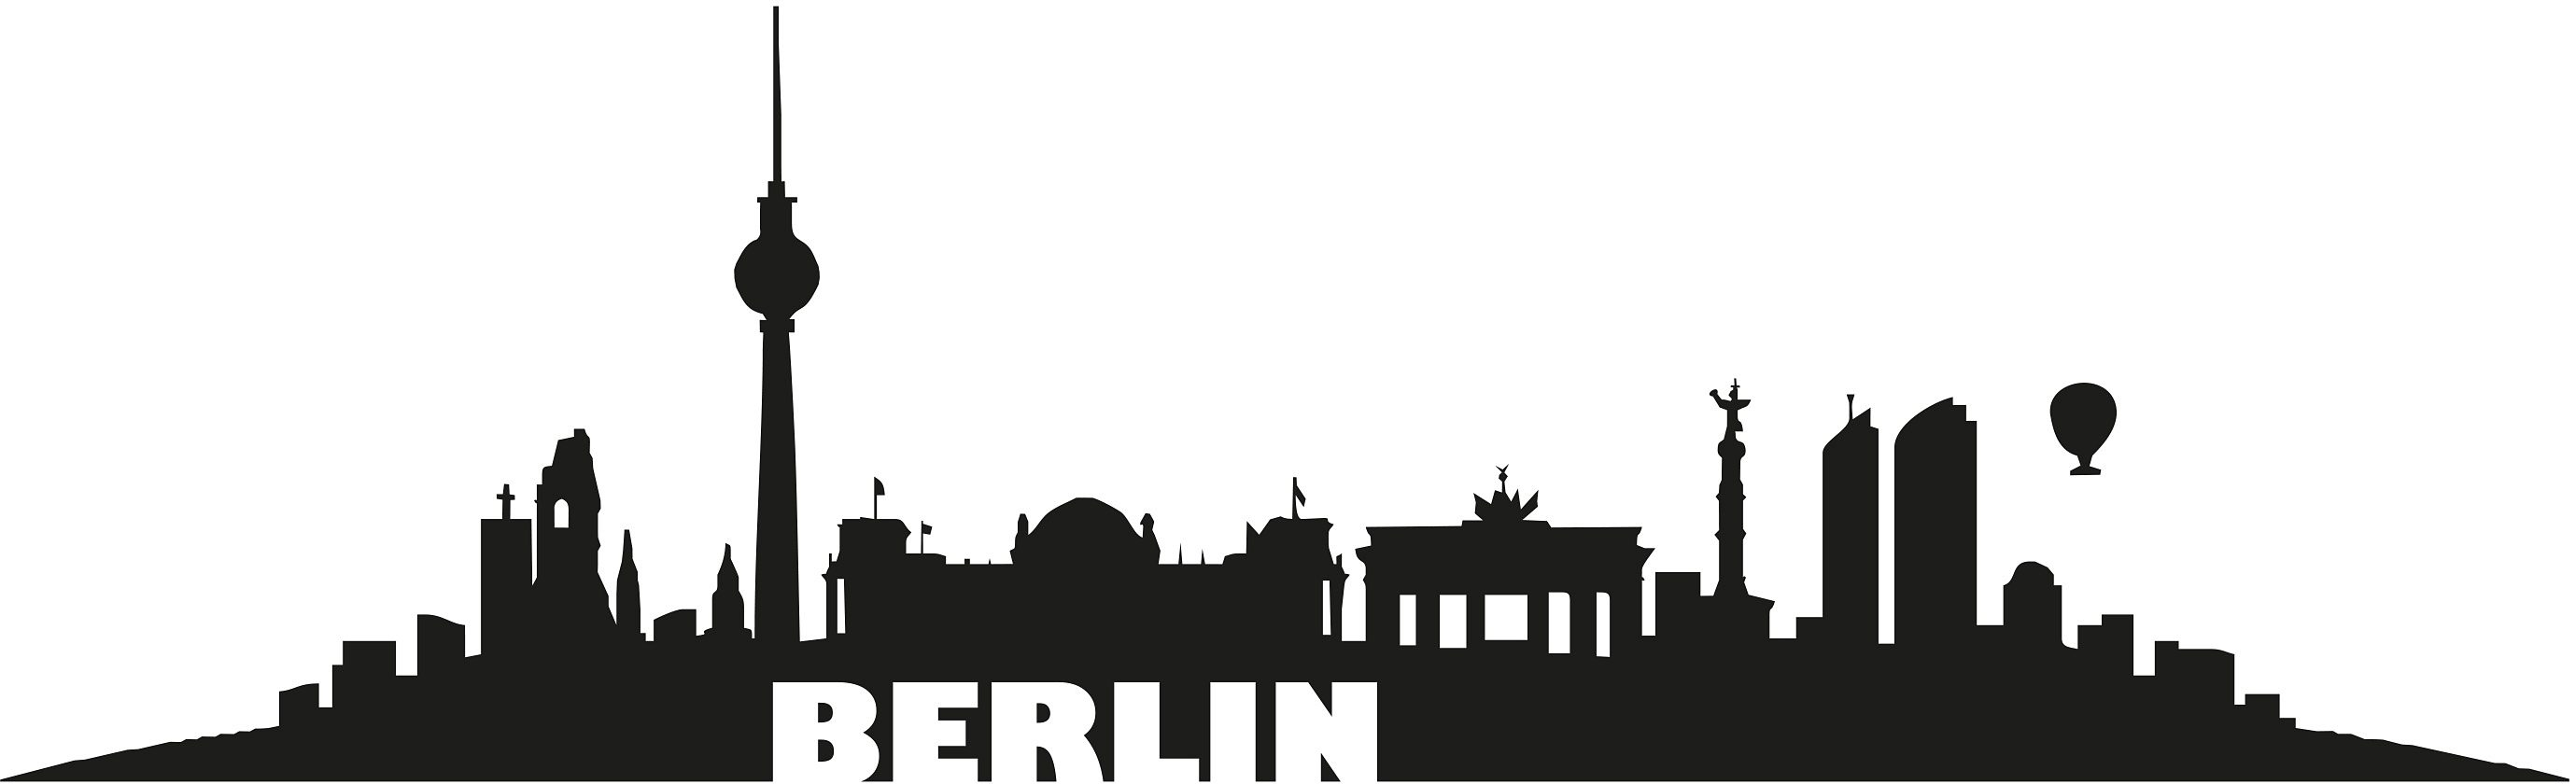 Home affaire Wandtattoo »Berlin Skyline« 120/36 cm